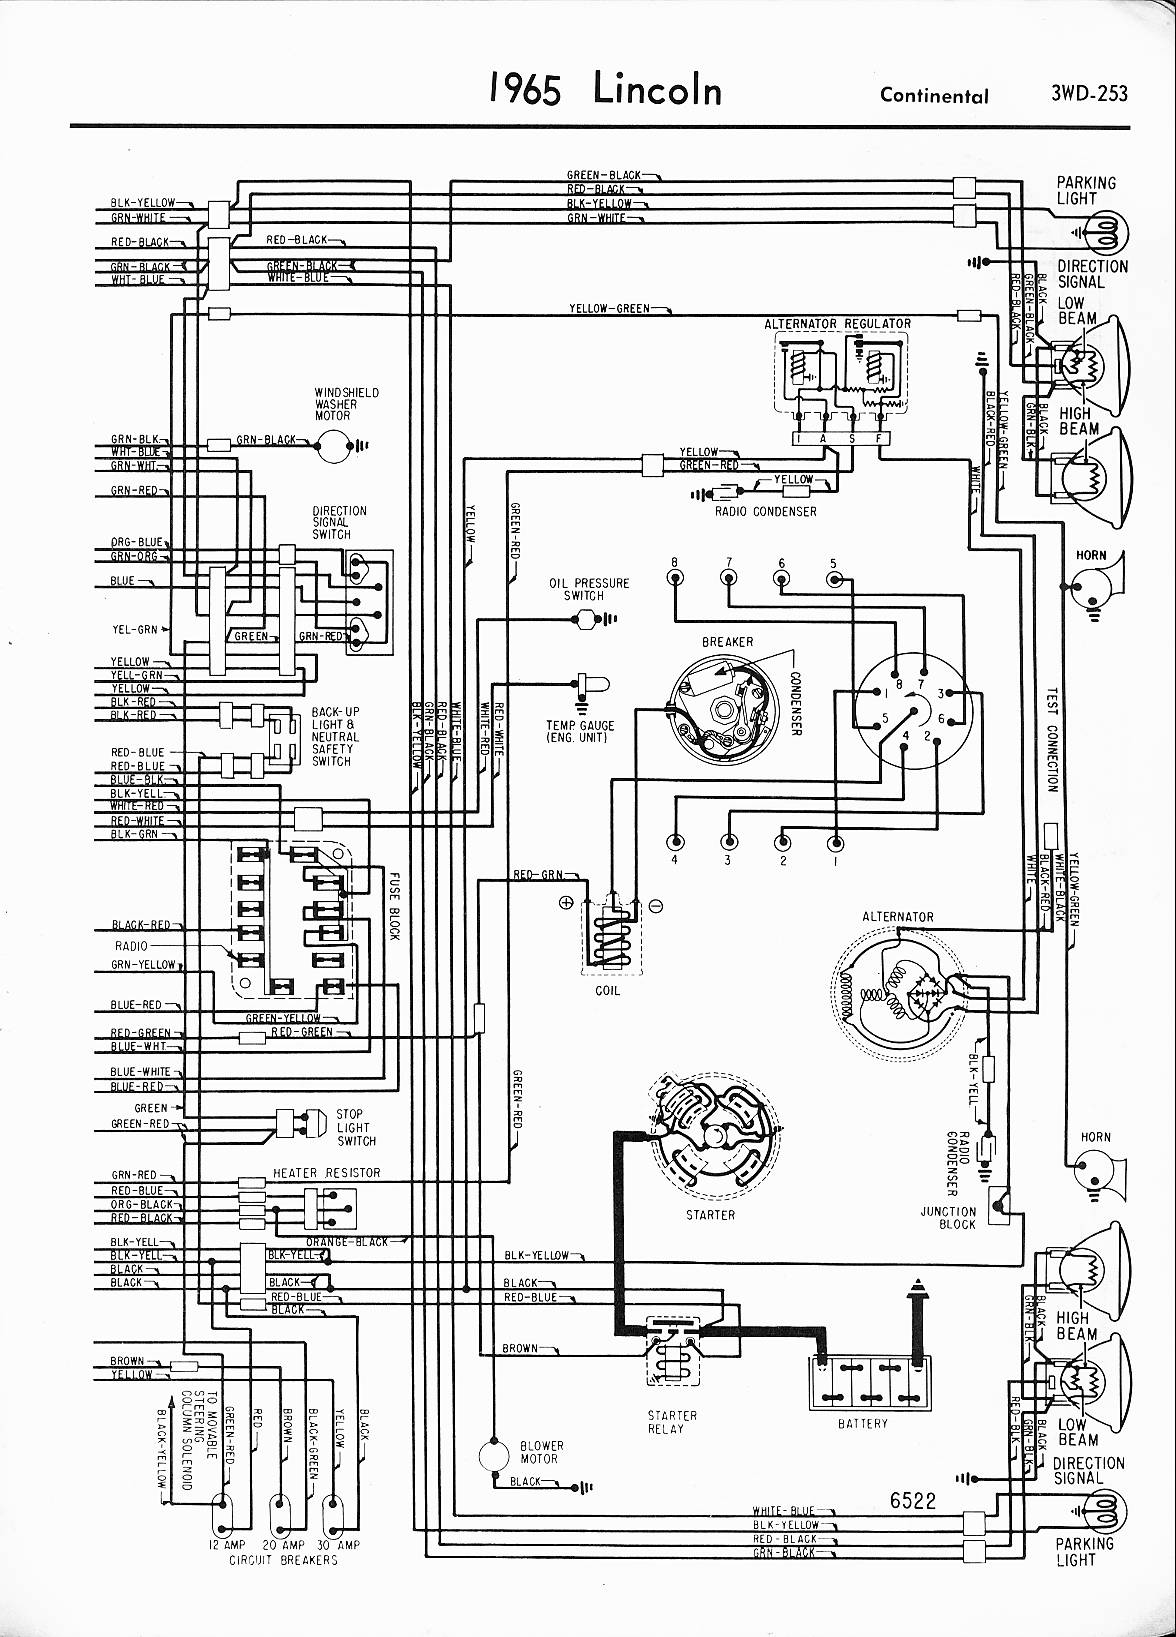 1965 Lincoln Continental Wiring Diagram Schematics Diagrams 1999 Bmw 528i Ac 1957 Rh Oldcarmanualproject Com Convertible 1985